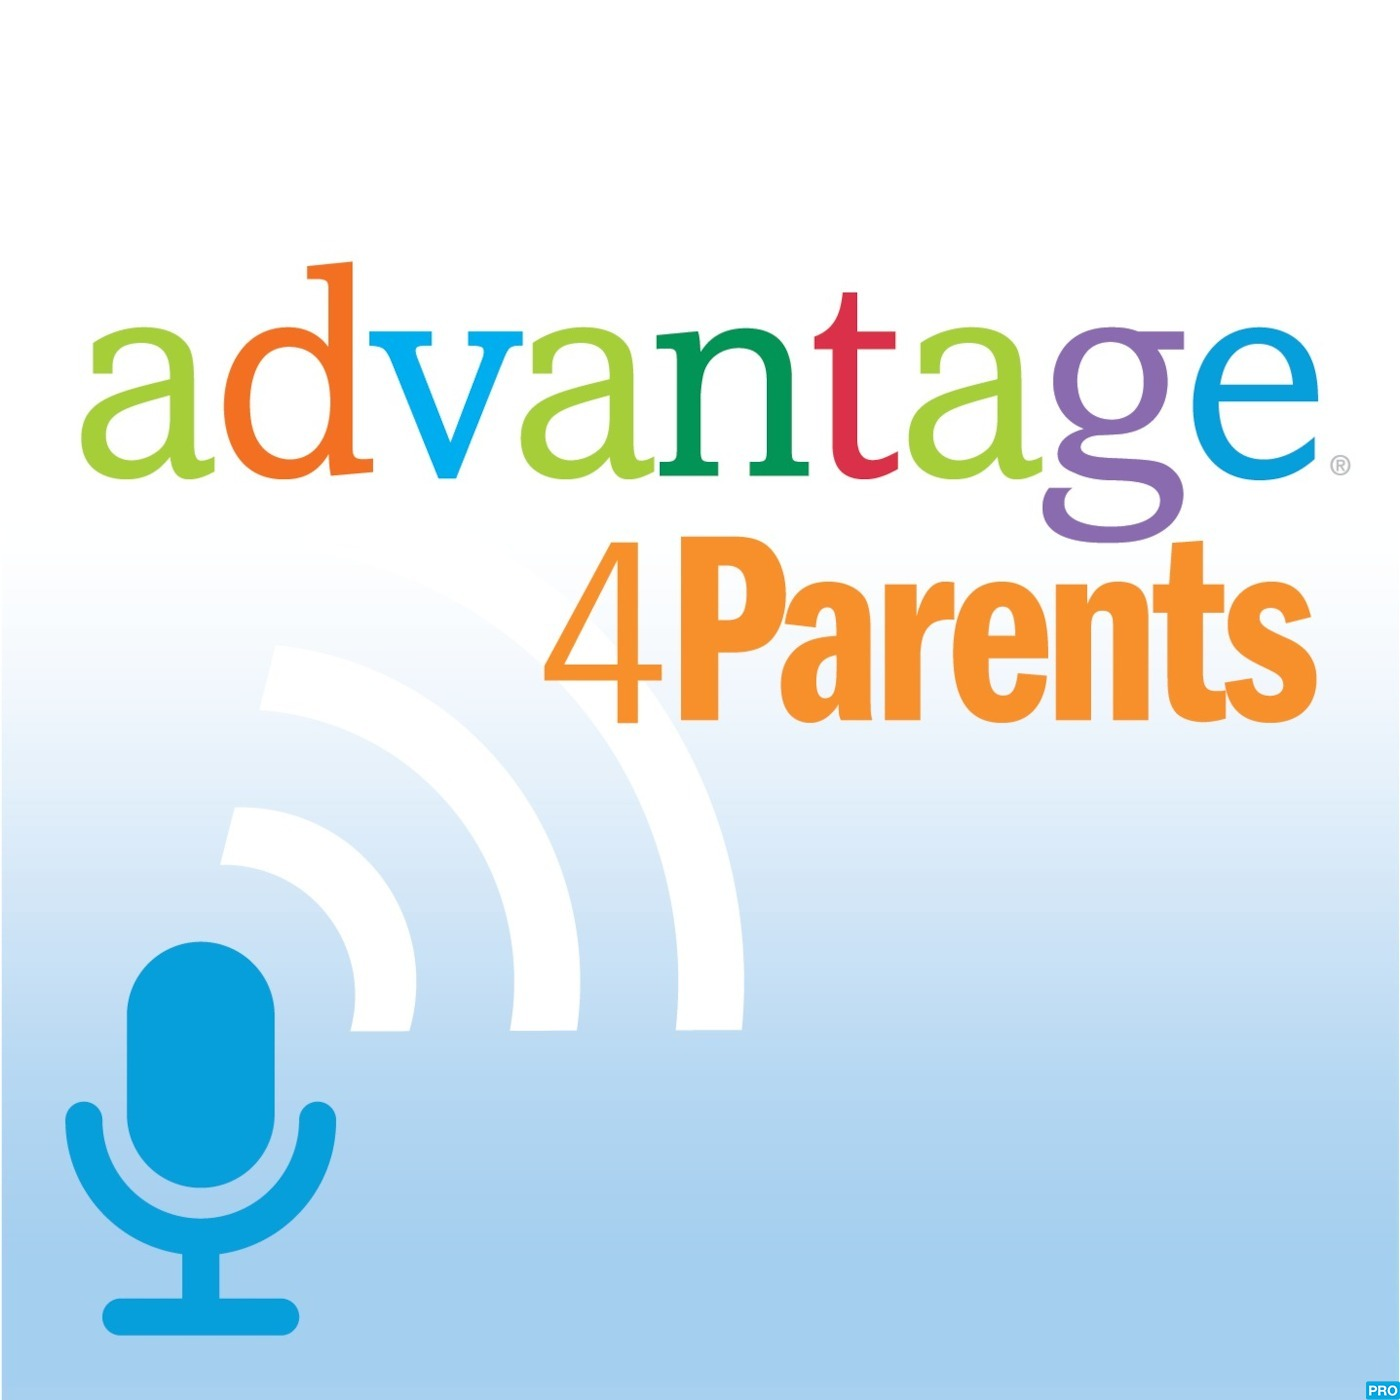 Advantage4Parents